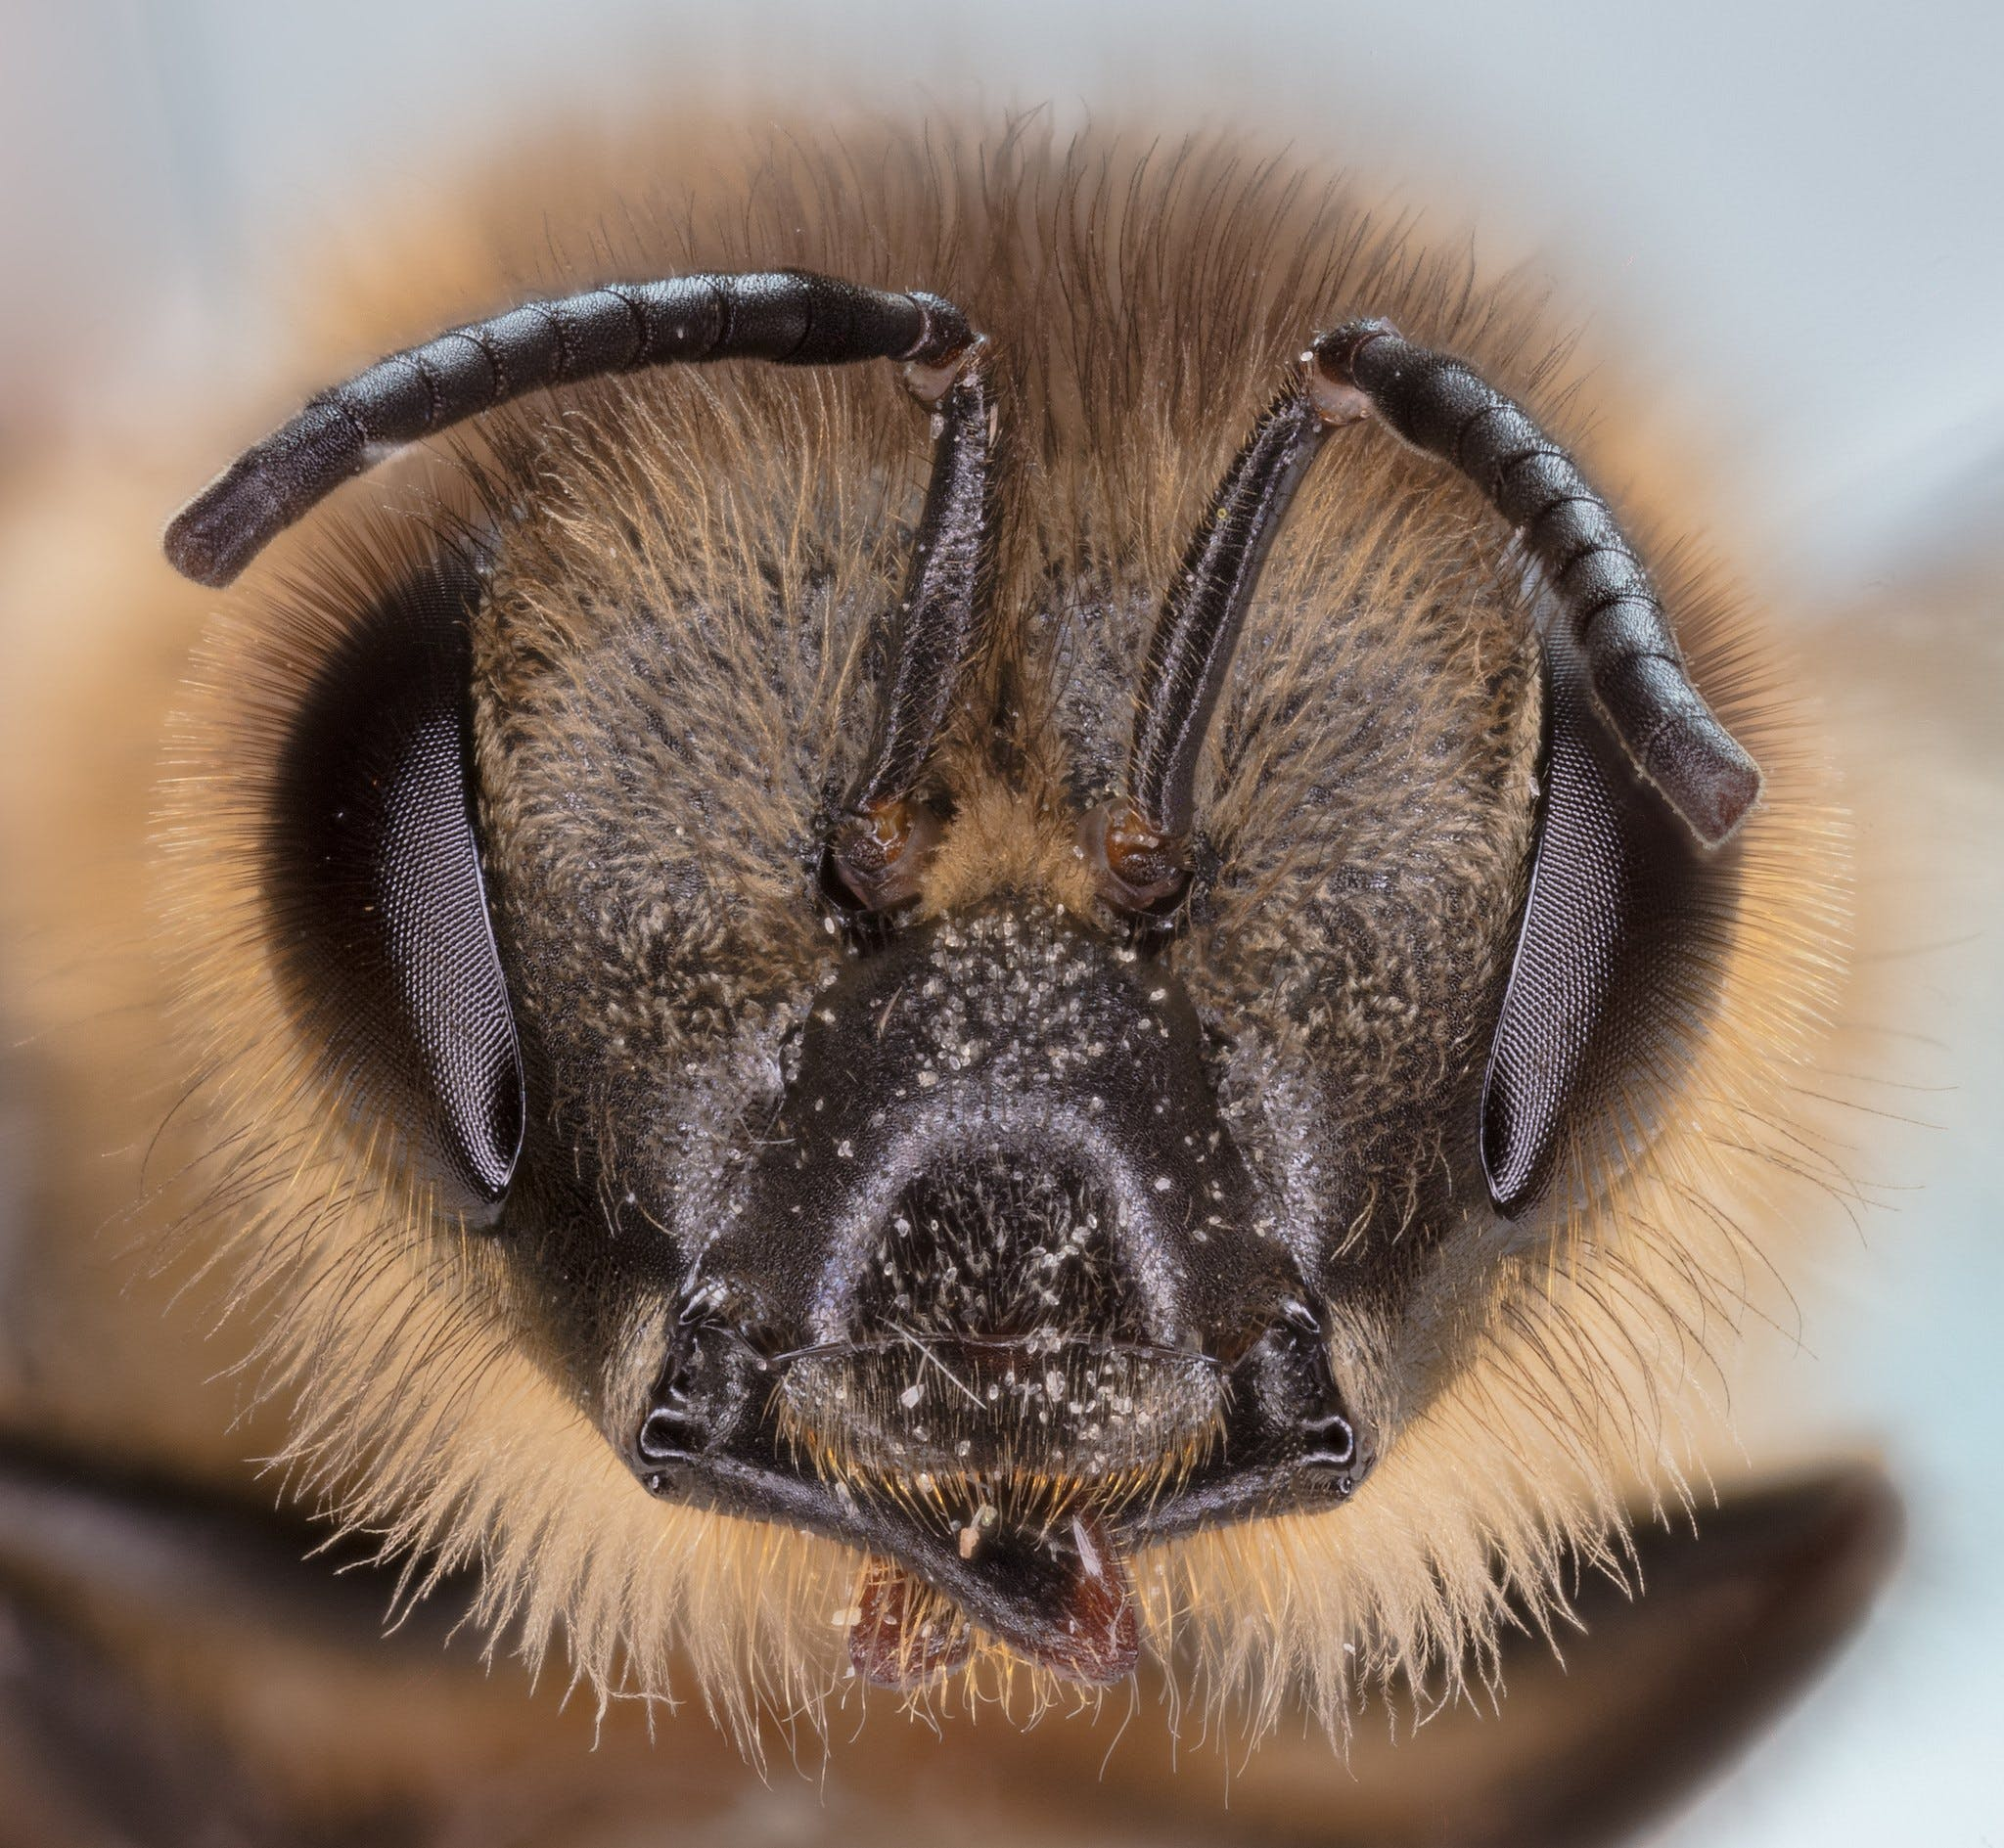 The head of a plasterer bee, a short-tongued bee